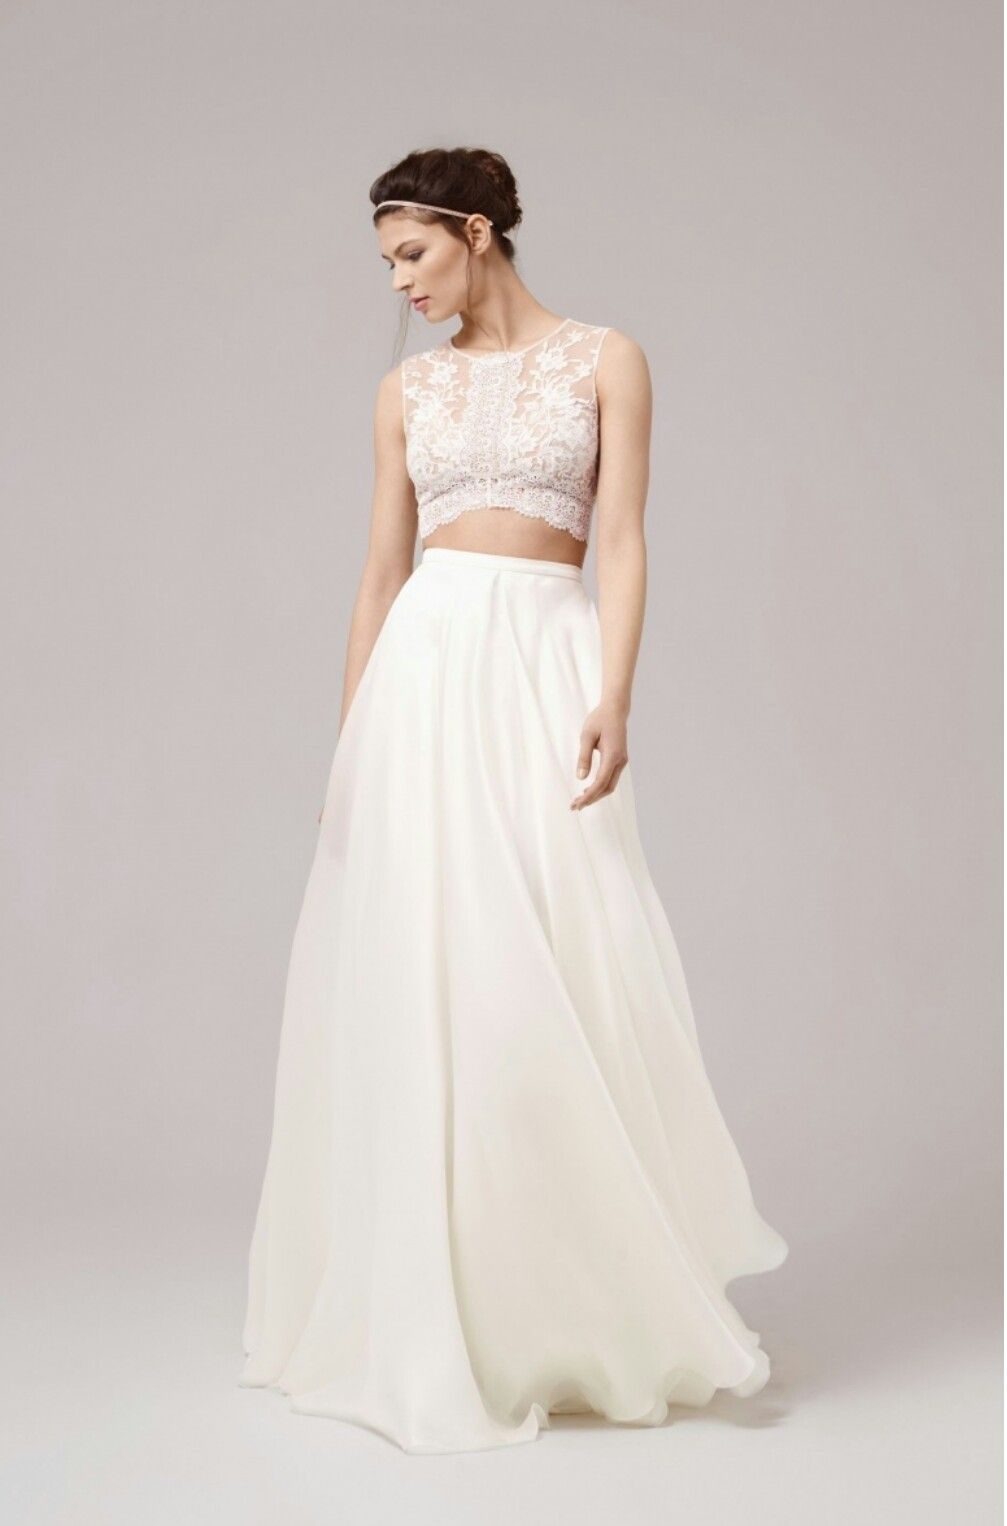 Pin Op The Modern Bride Dresses Gowns